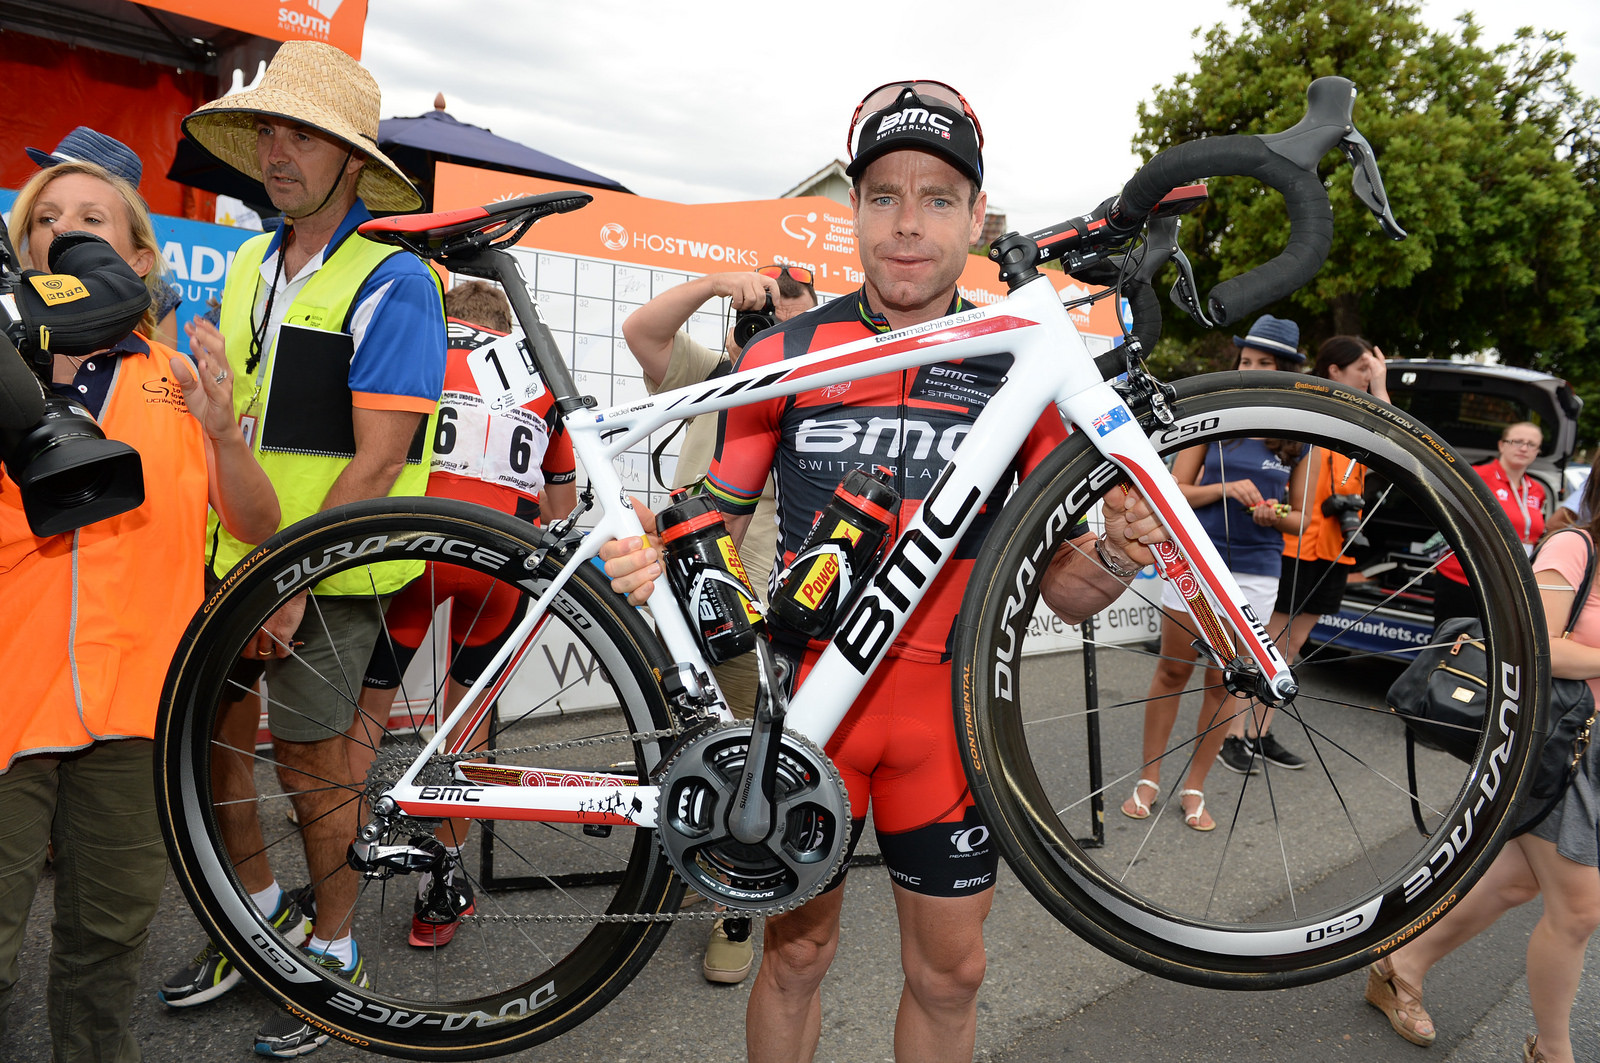 Cadel Evans Special Edition Bmc Slr01 For Final Santos